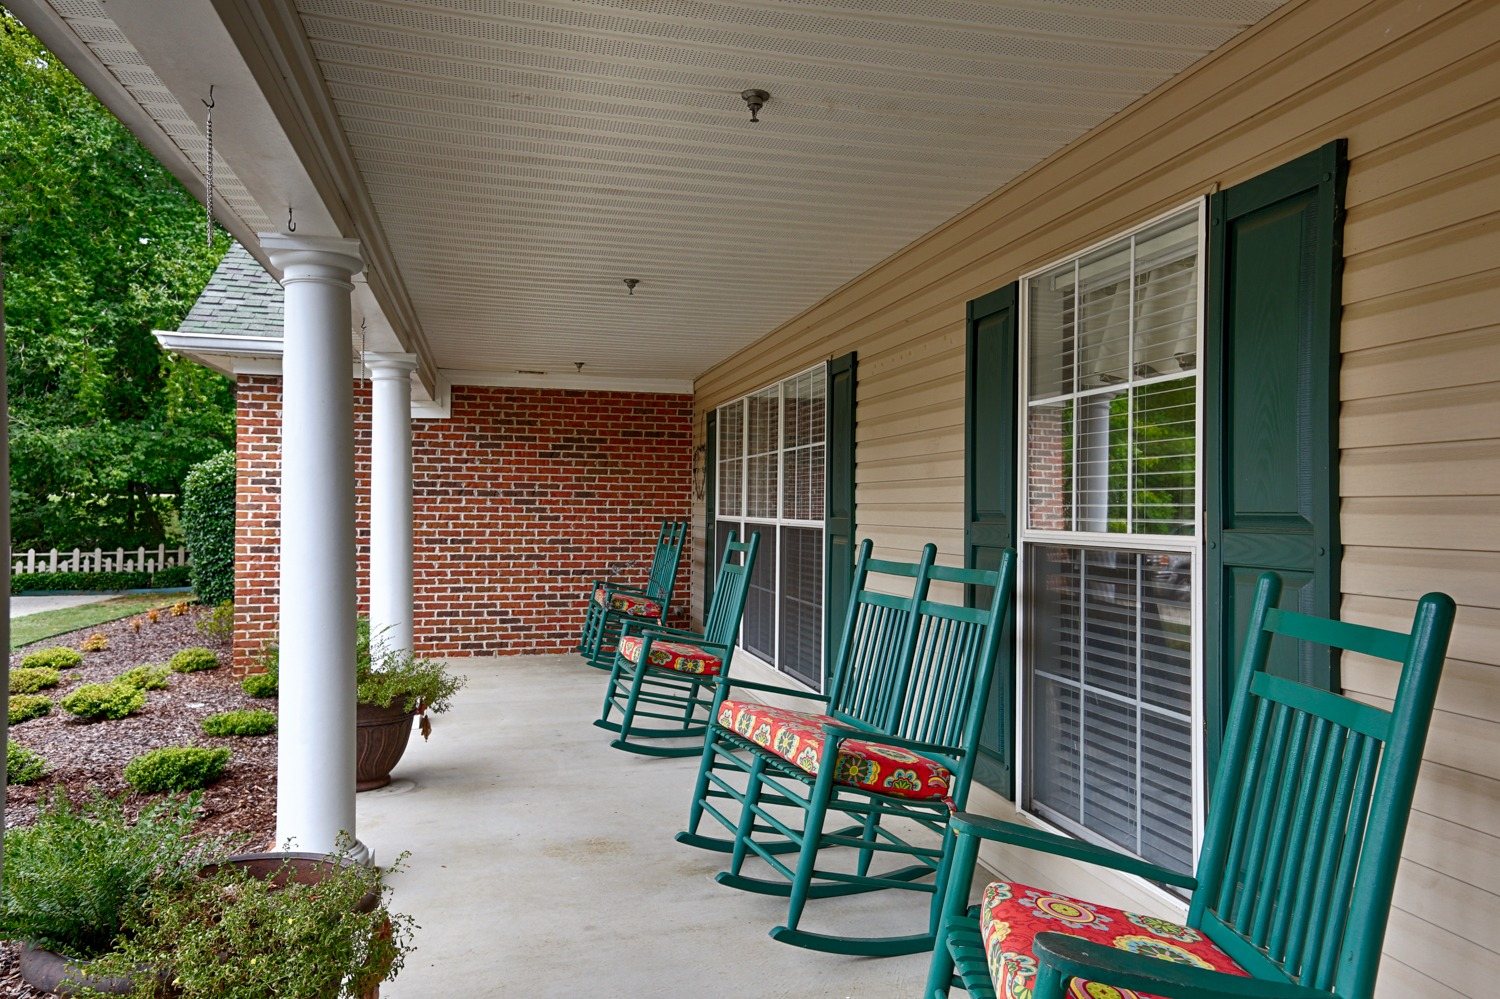 Country Cottage Russellville - Front porch with rocking chairs